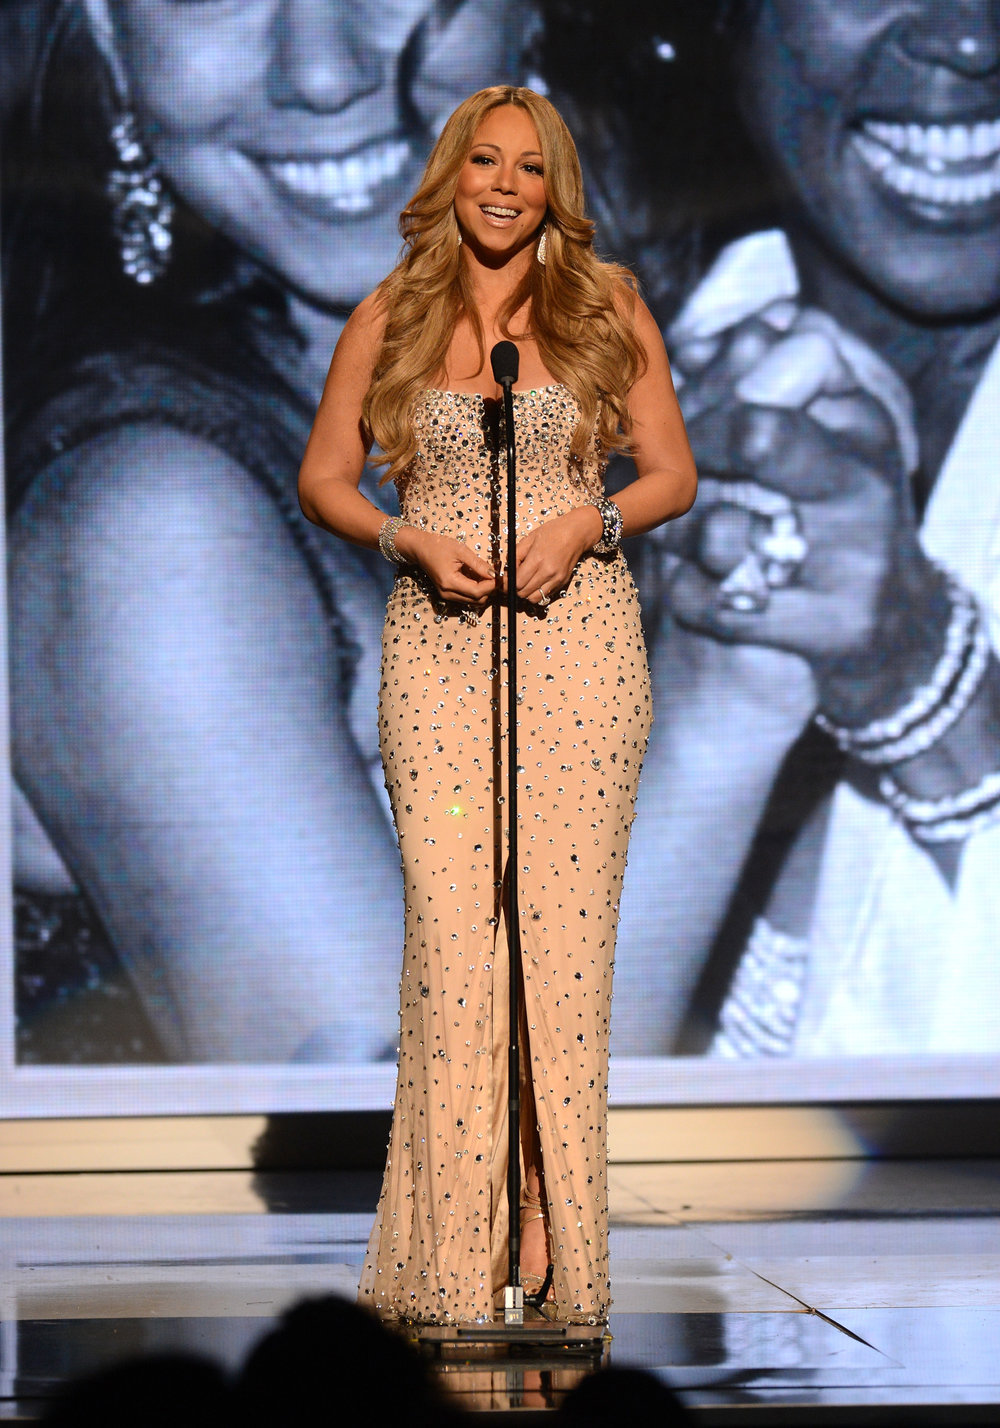 Mariah Carey at the 2012 BET Awards